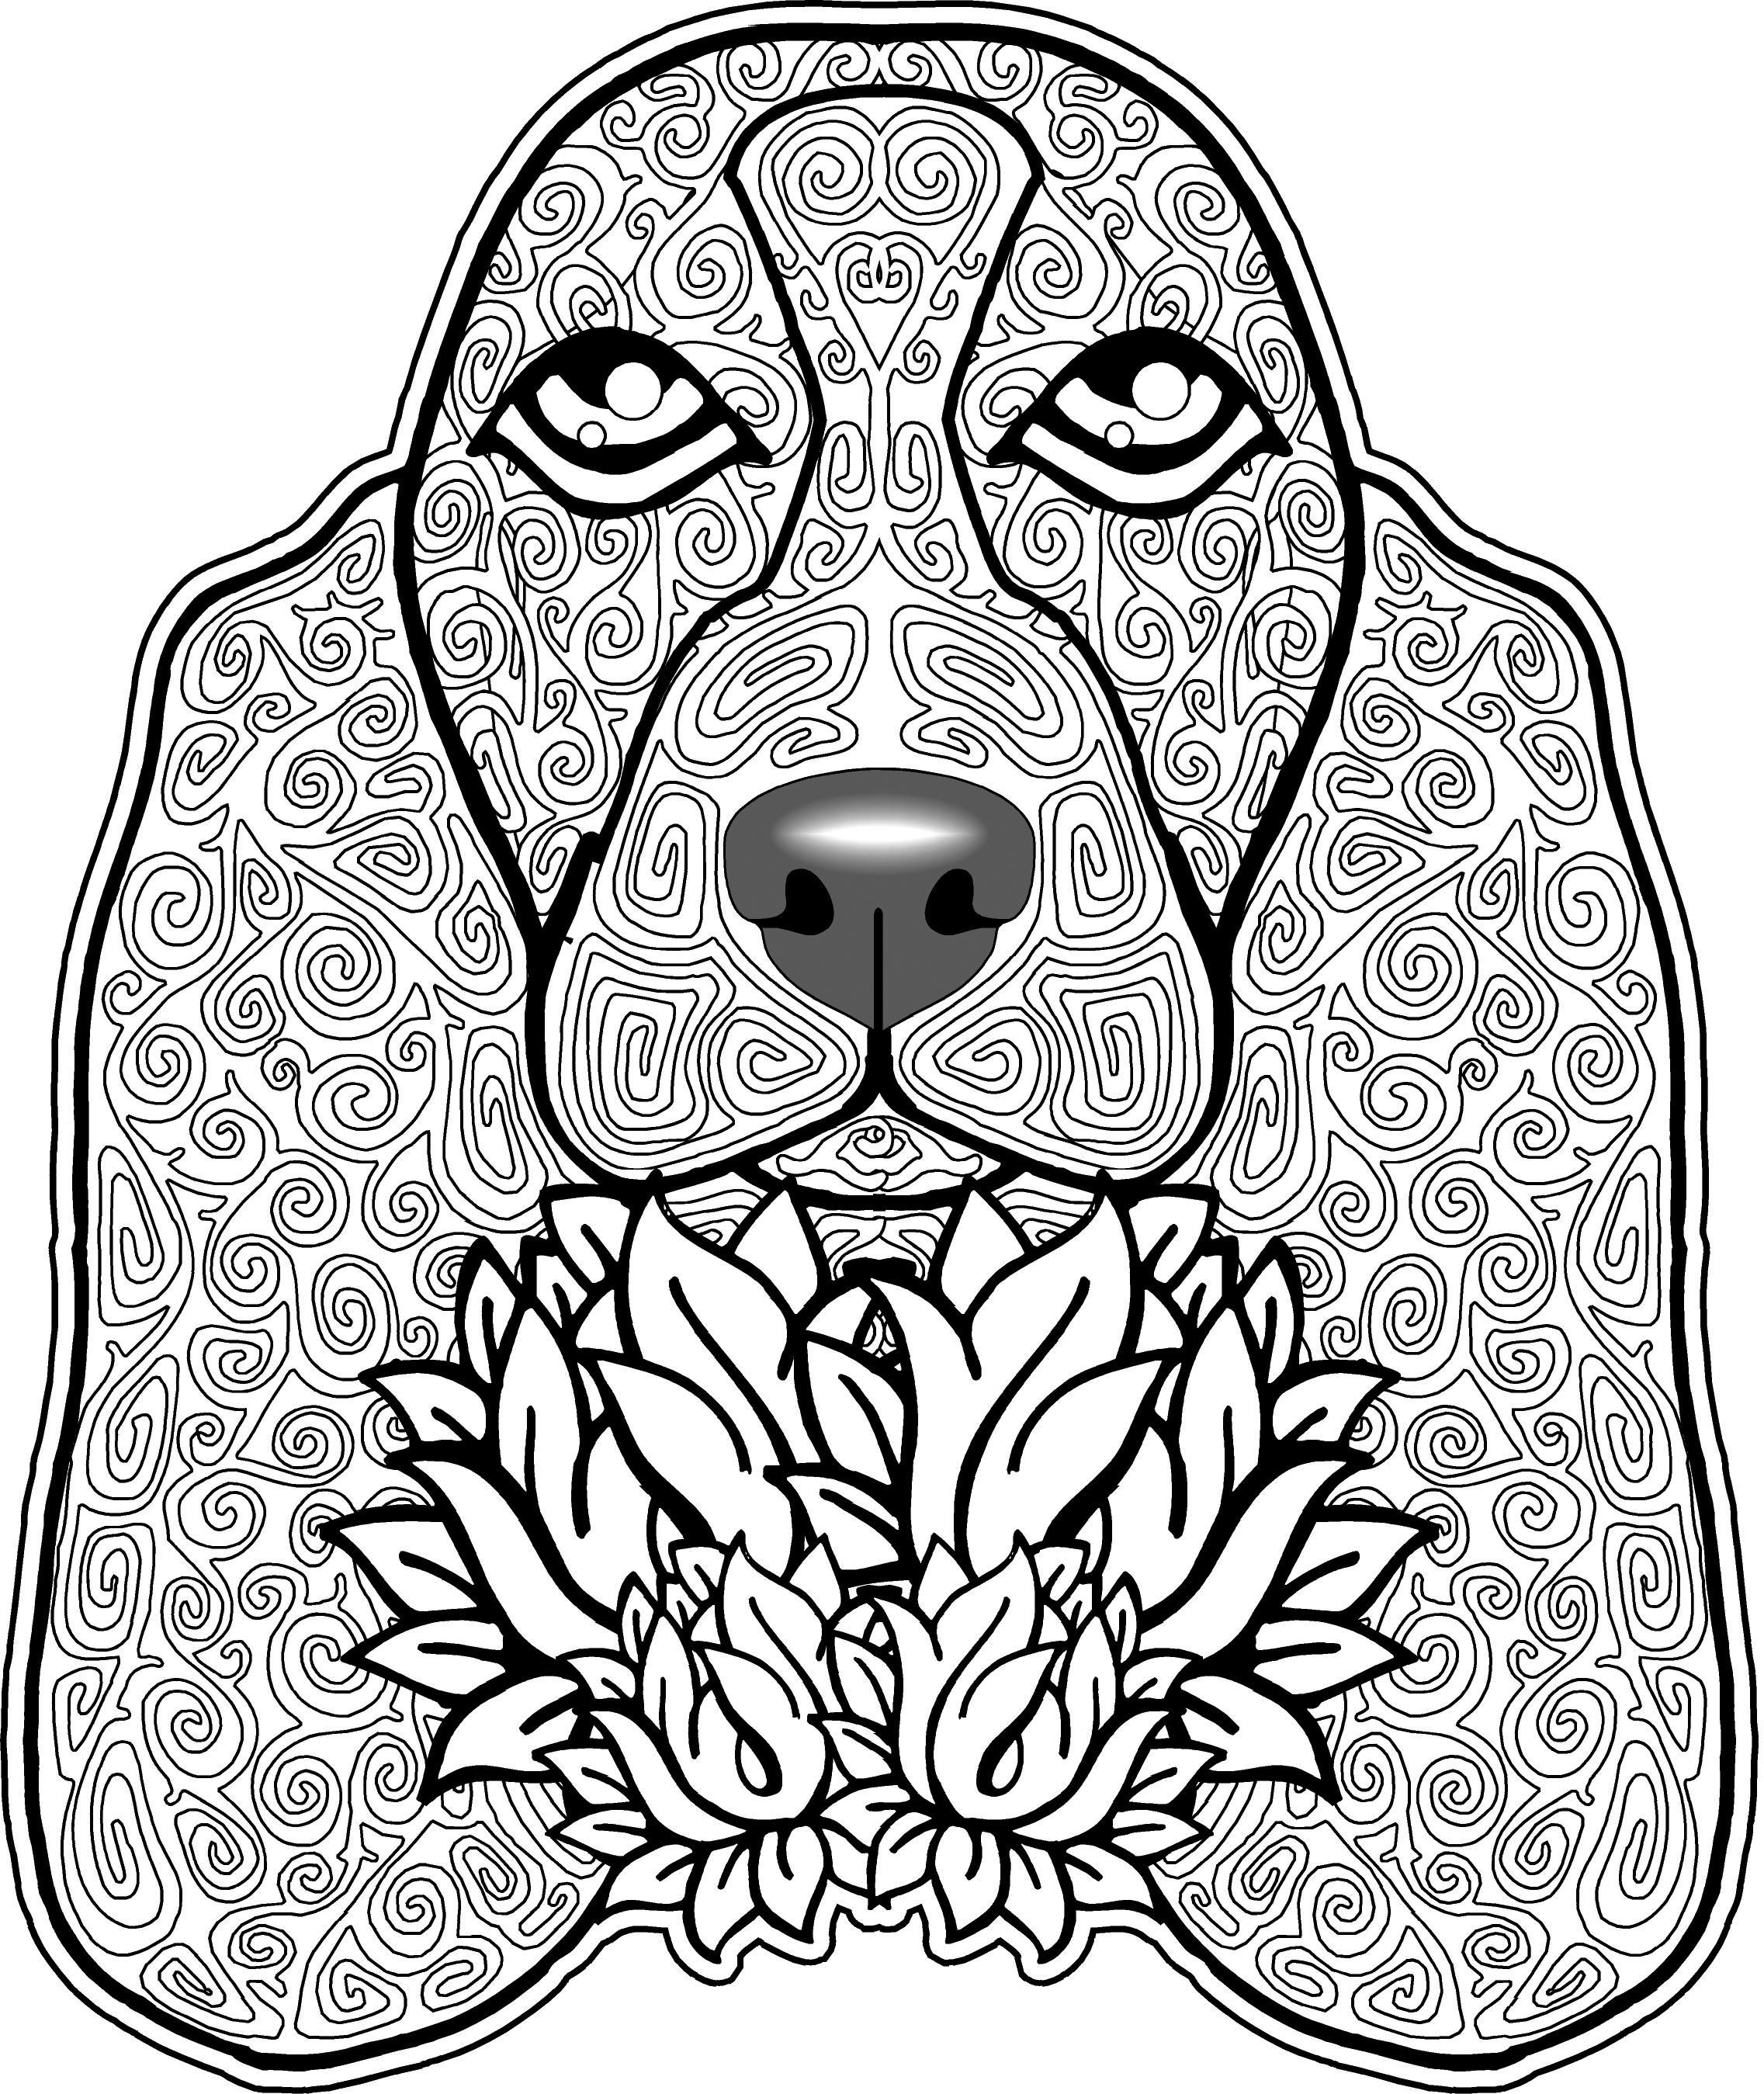 Dog Coloring Page, Dog Coloring Pages, Free Coloring Page